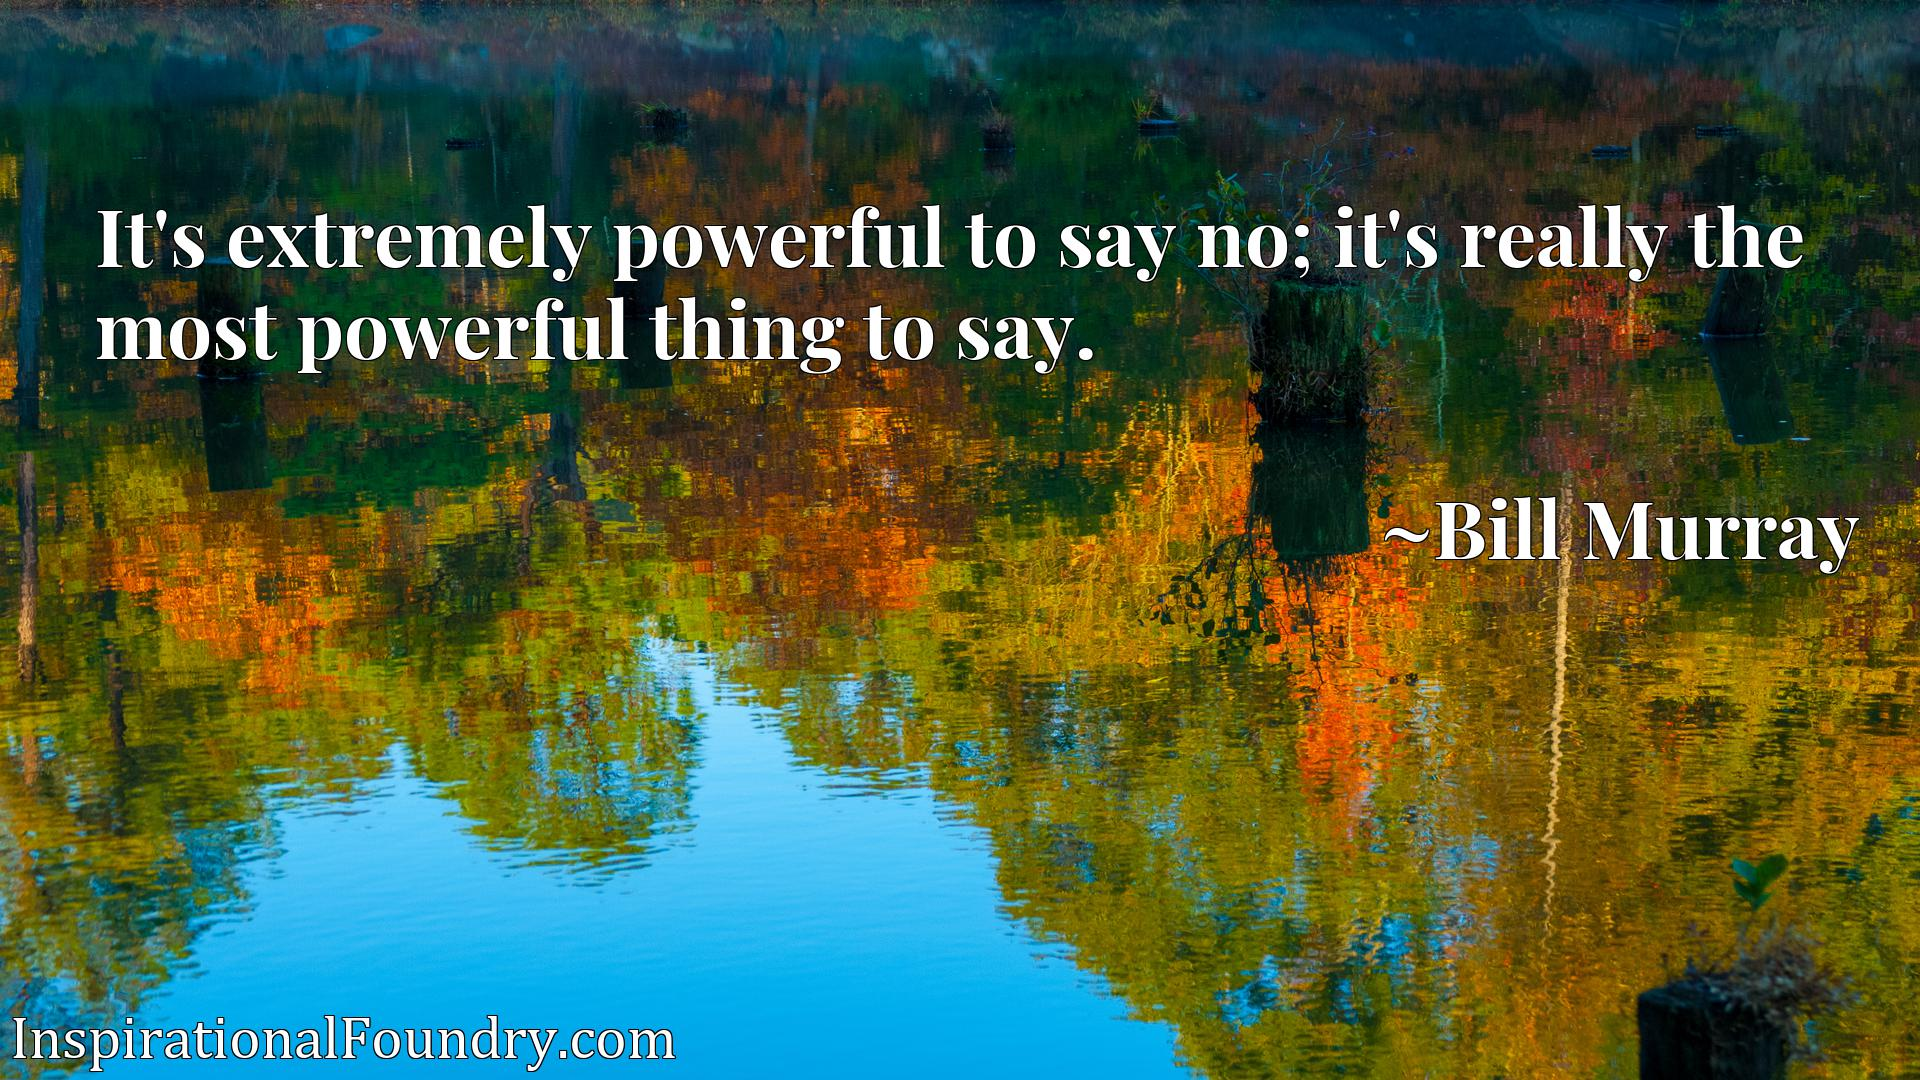 It's extremely powerful to say no; it's really the most powerful thing to say.